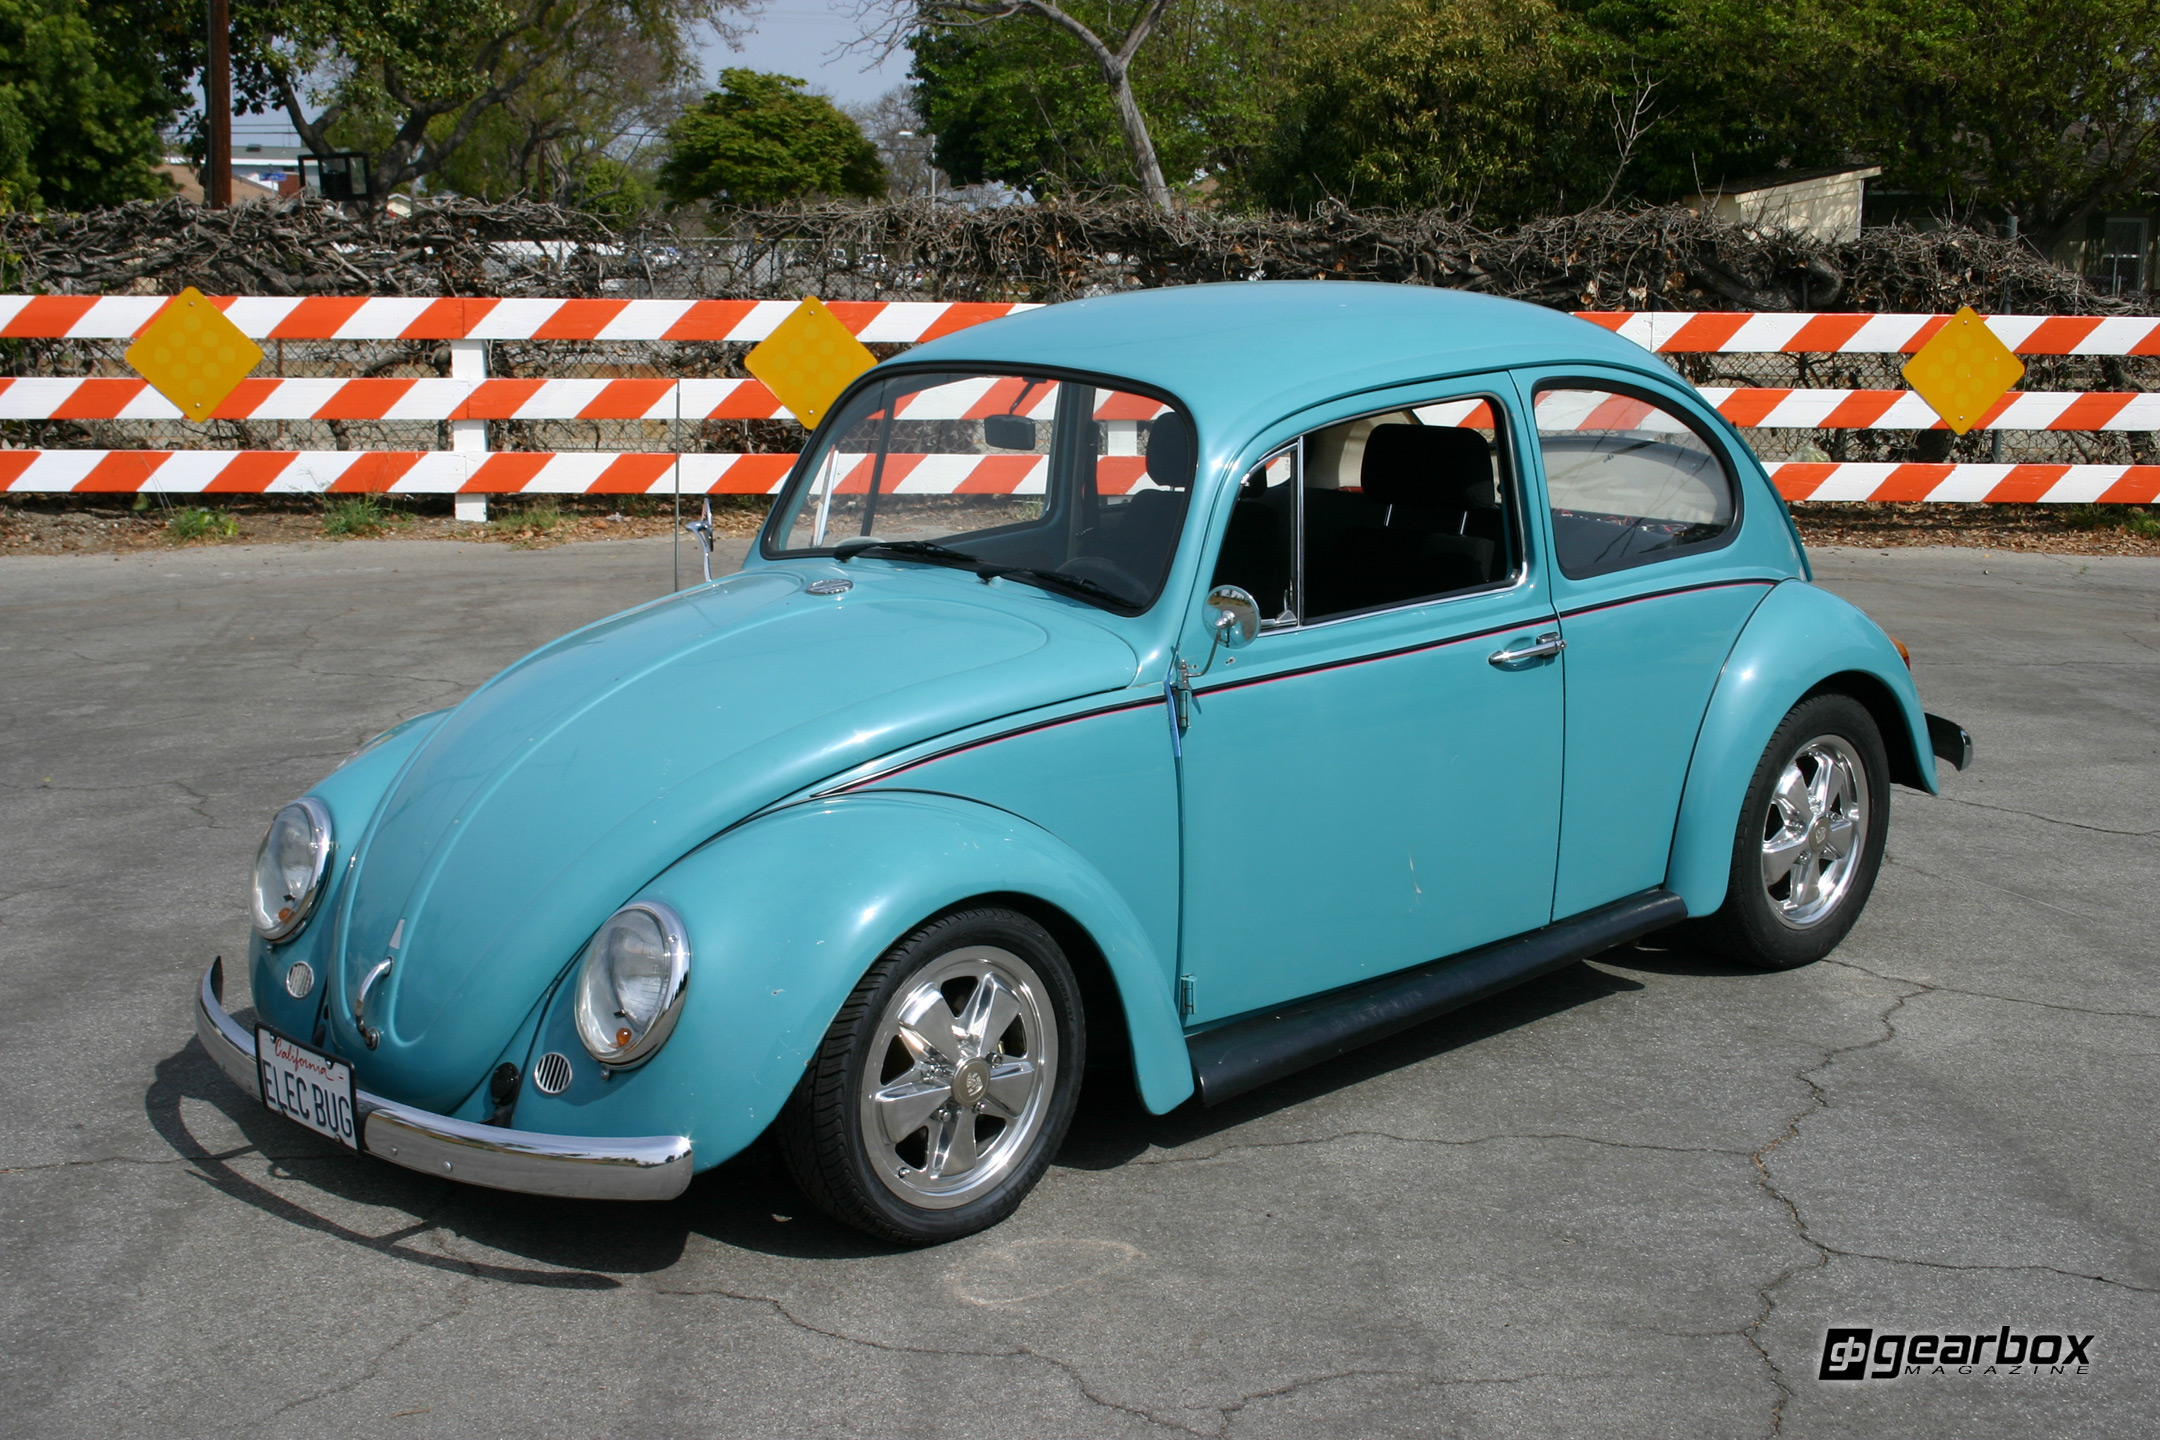 noland david news first ebug photo electric car by drive beetle conversion hugo richard h owned bugs volkswagen